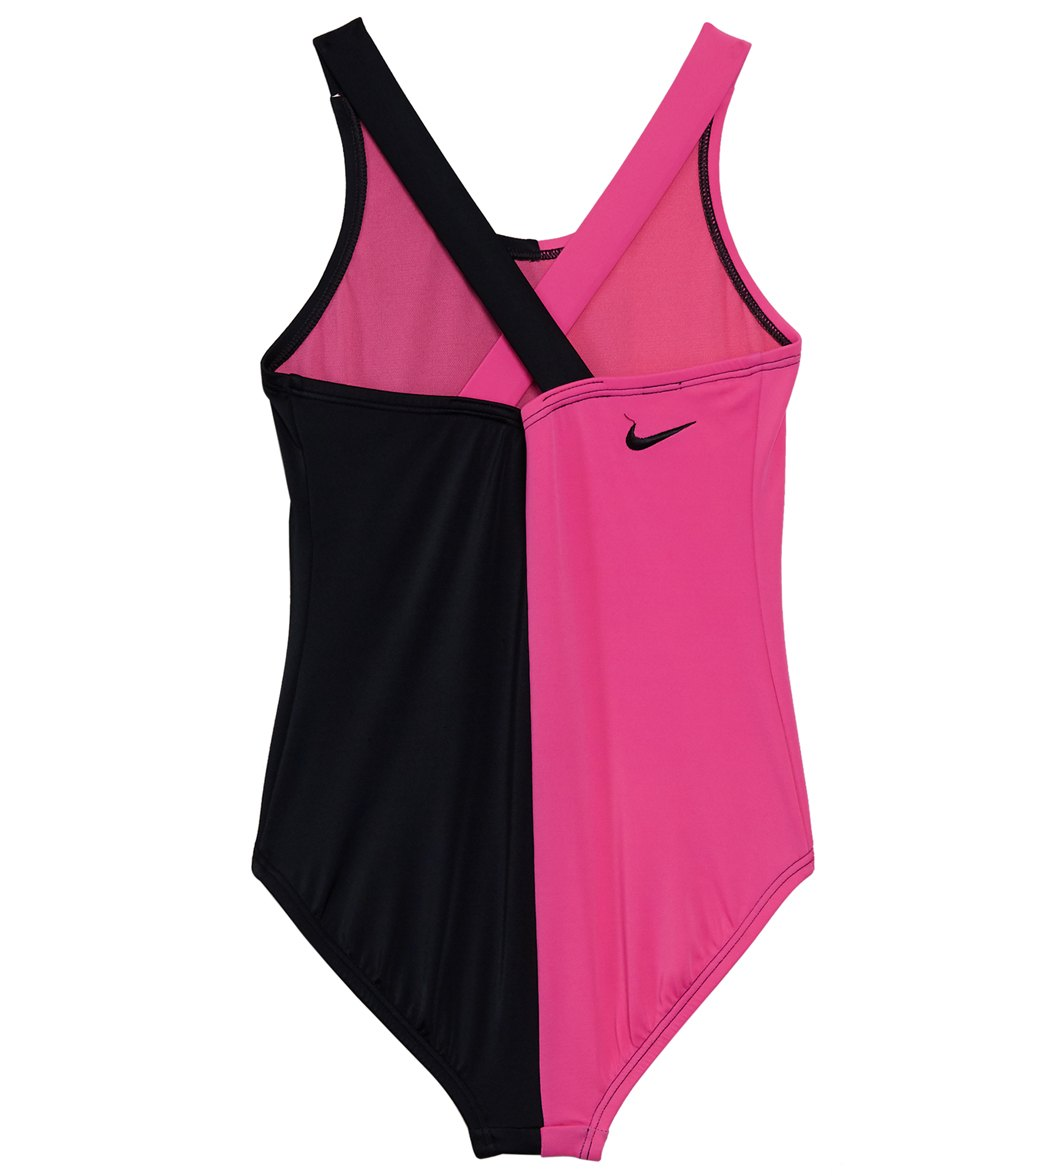 d557fbaa0 Nike Girls' Rift One Piece Crossback Swimsuit (Big Kid) at SwimOutlet.com